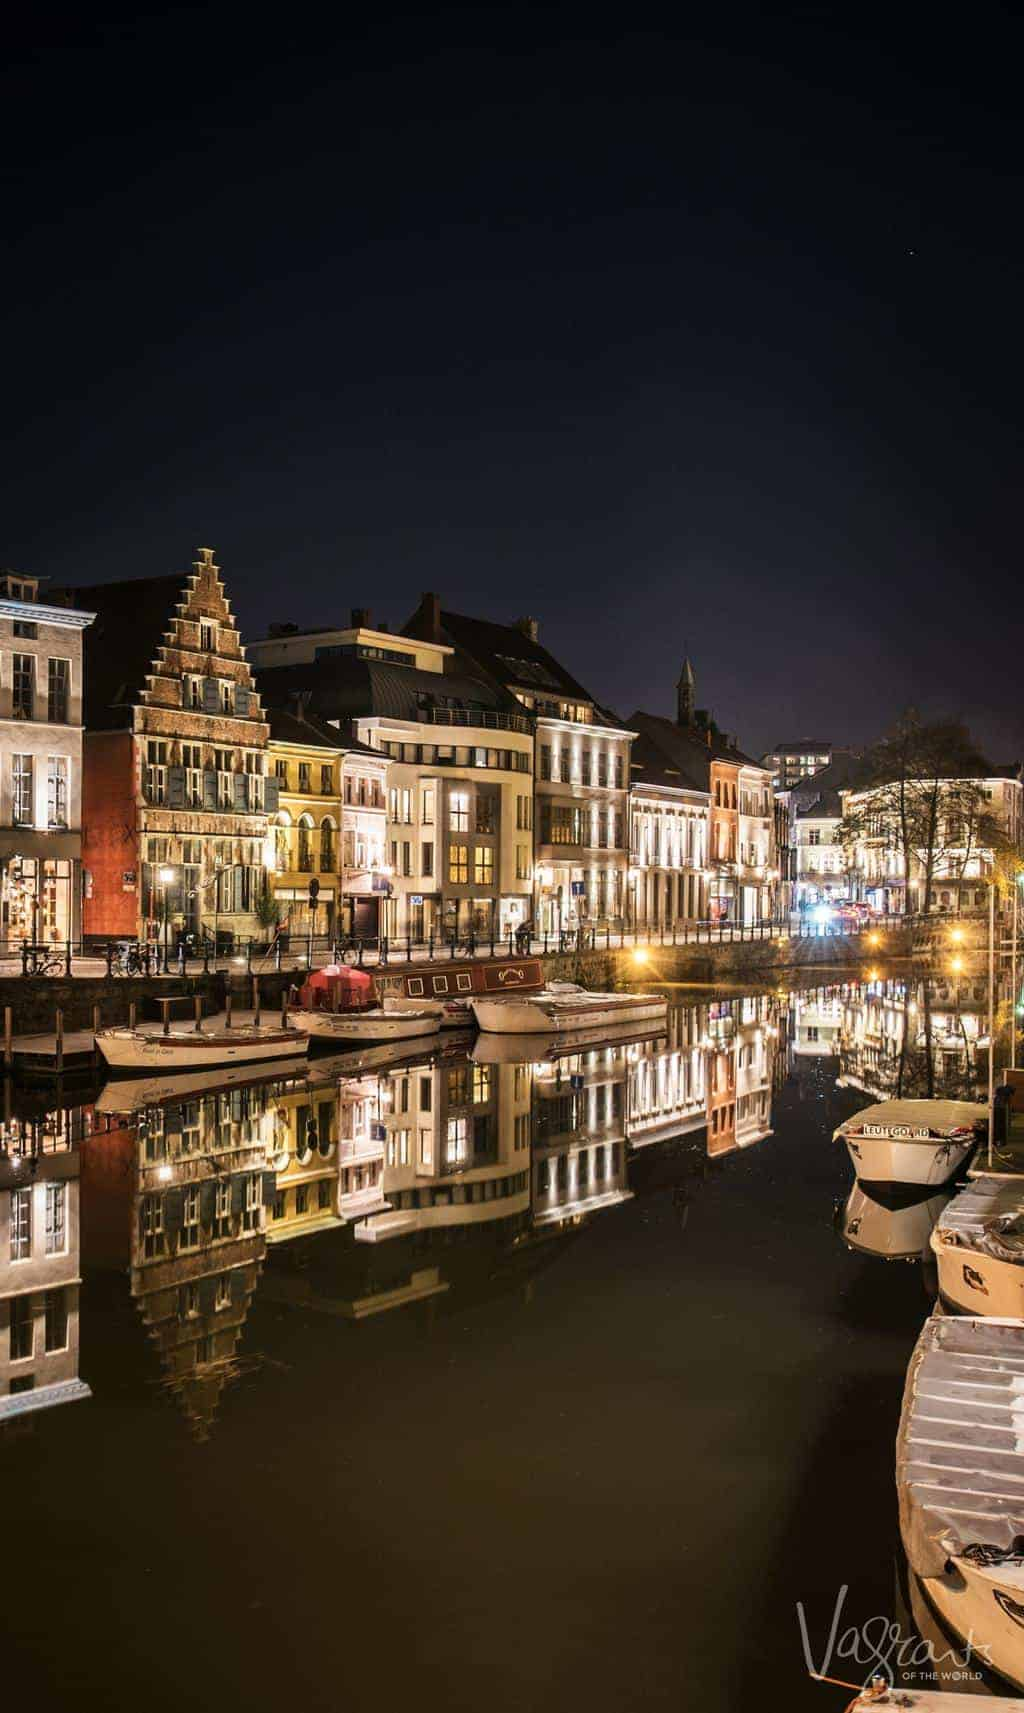 Ghent is shaping up as one of the best places to visit in Belgium